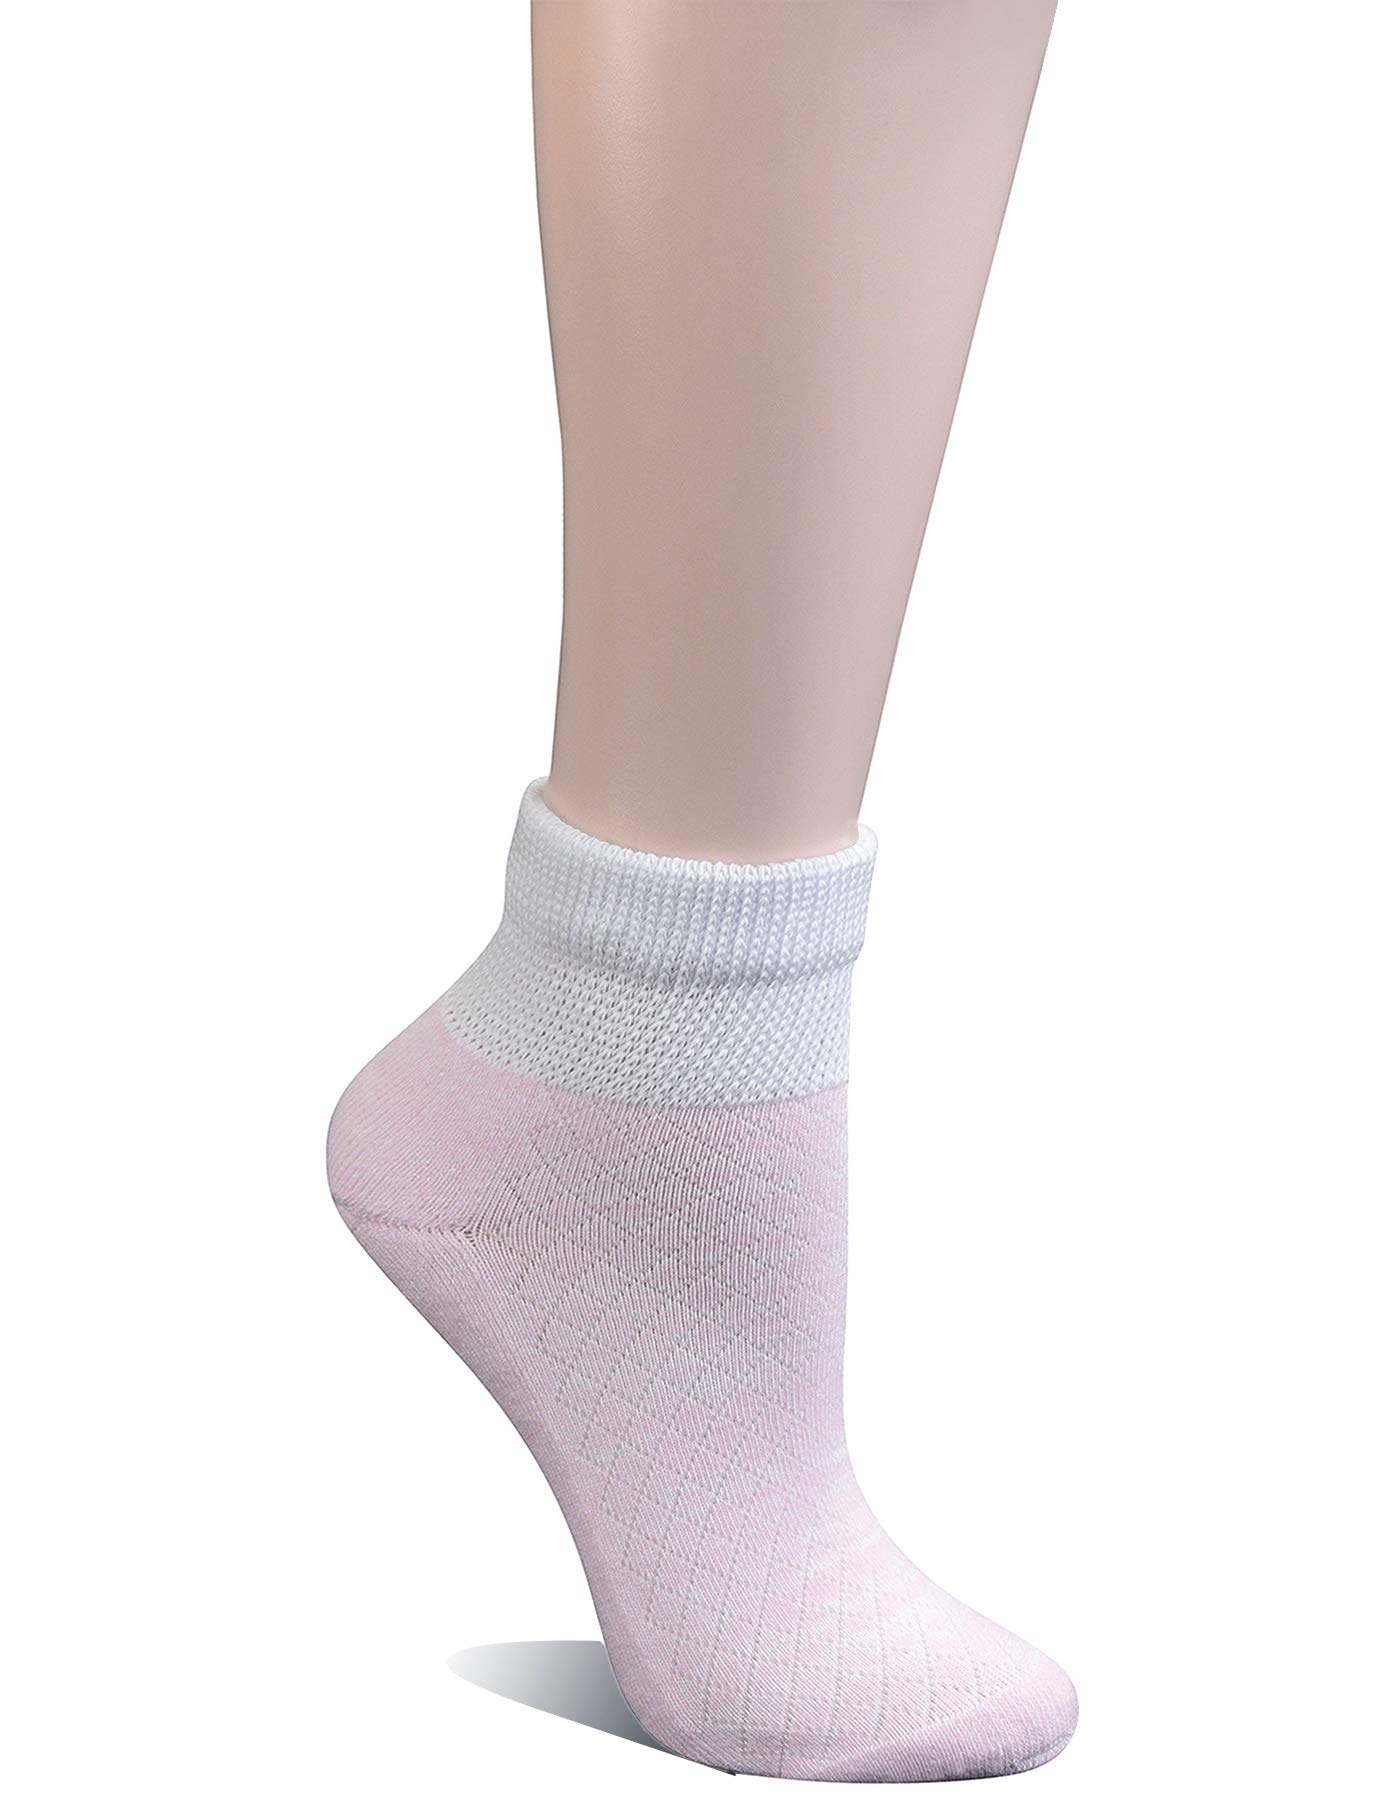 Yomandamor 5 Pairs Women's Cotton Ankle Breathable Mesh Diabetic Socks with Seamless Toe,L Size